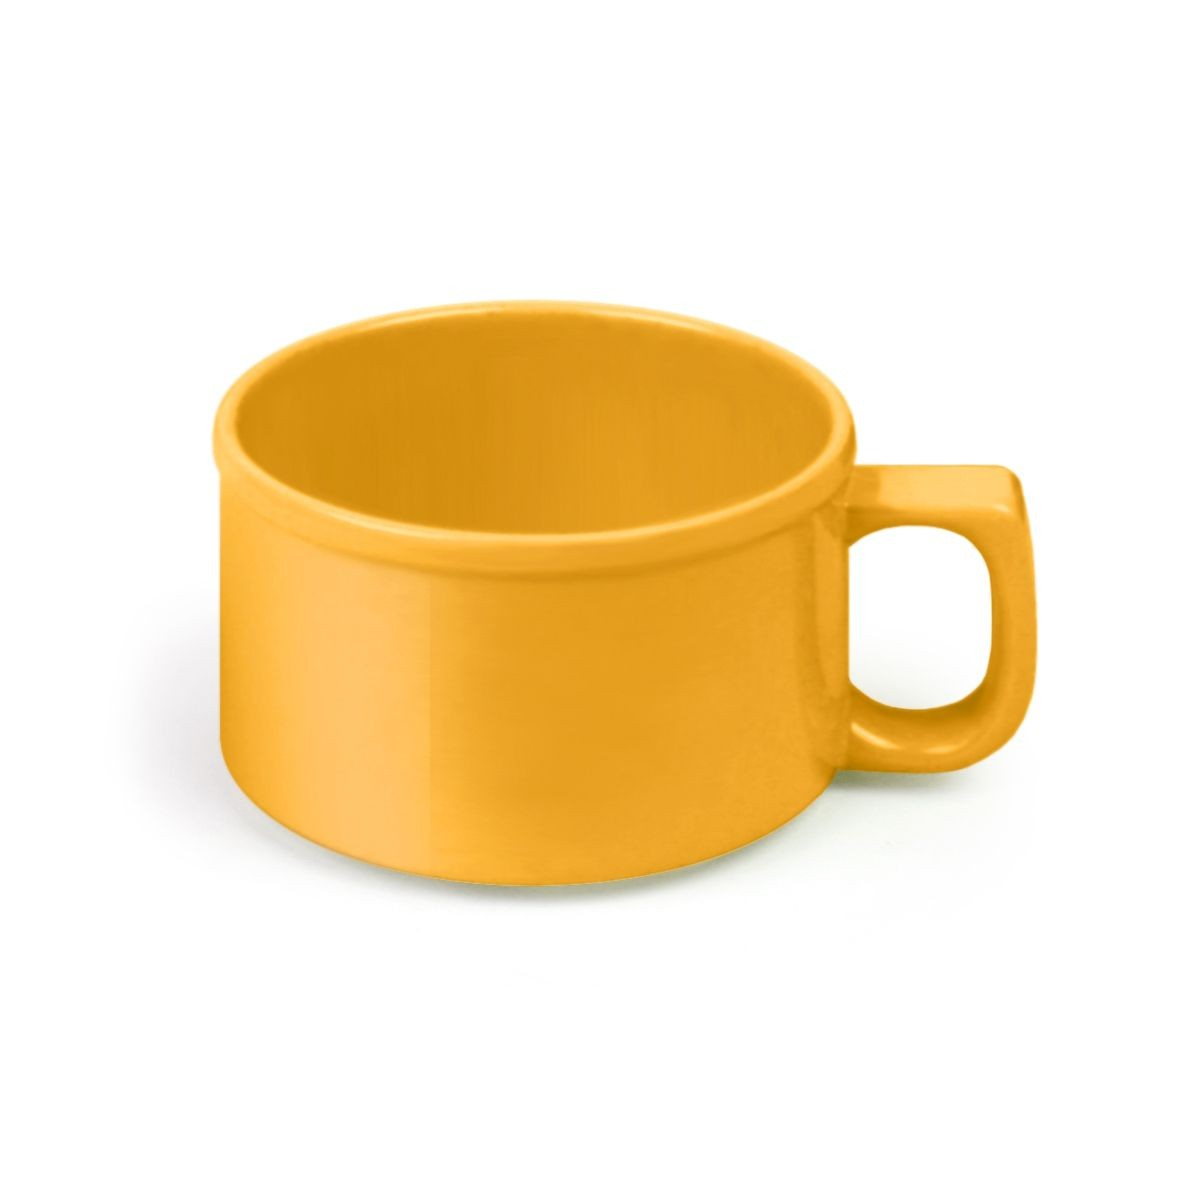 Thunder Group CR9016YW Yellow Melamine Soup Mug 10 oz. - 1 doz